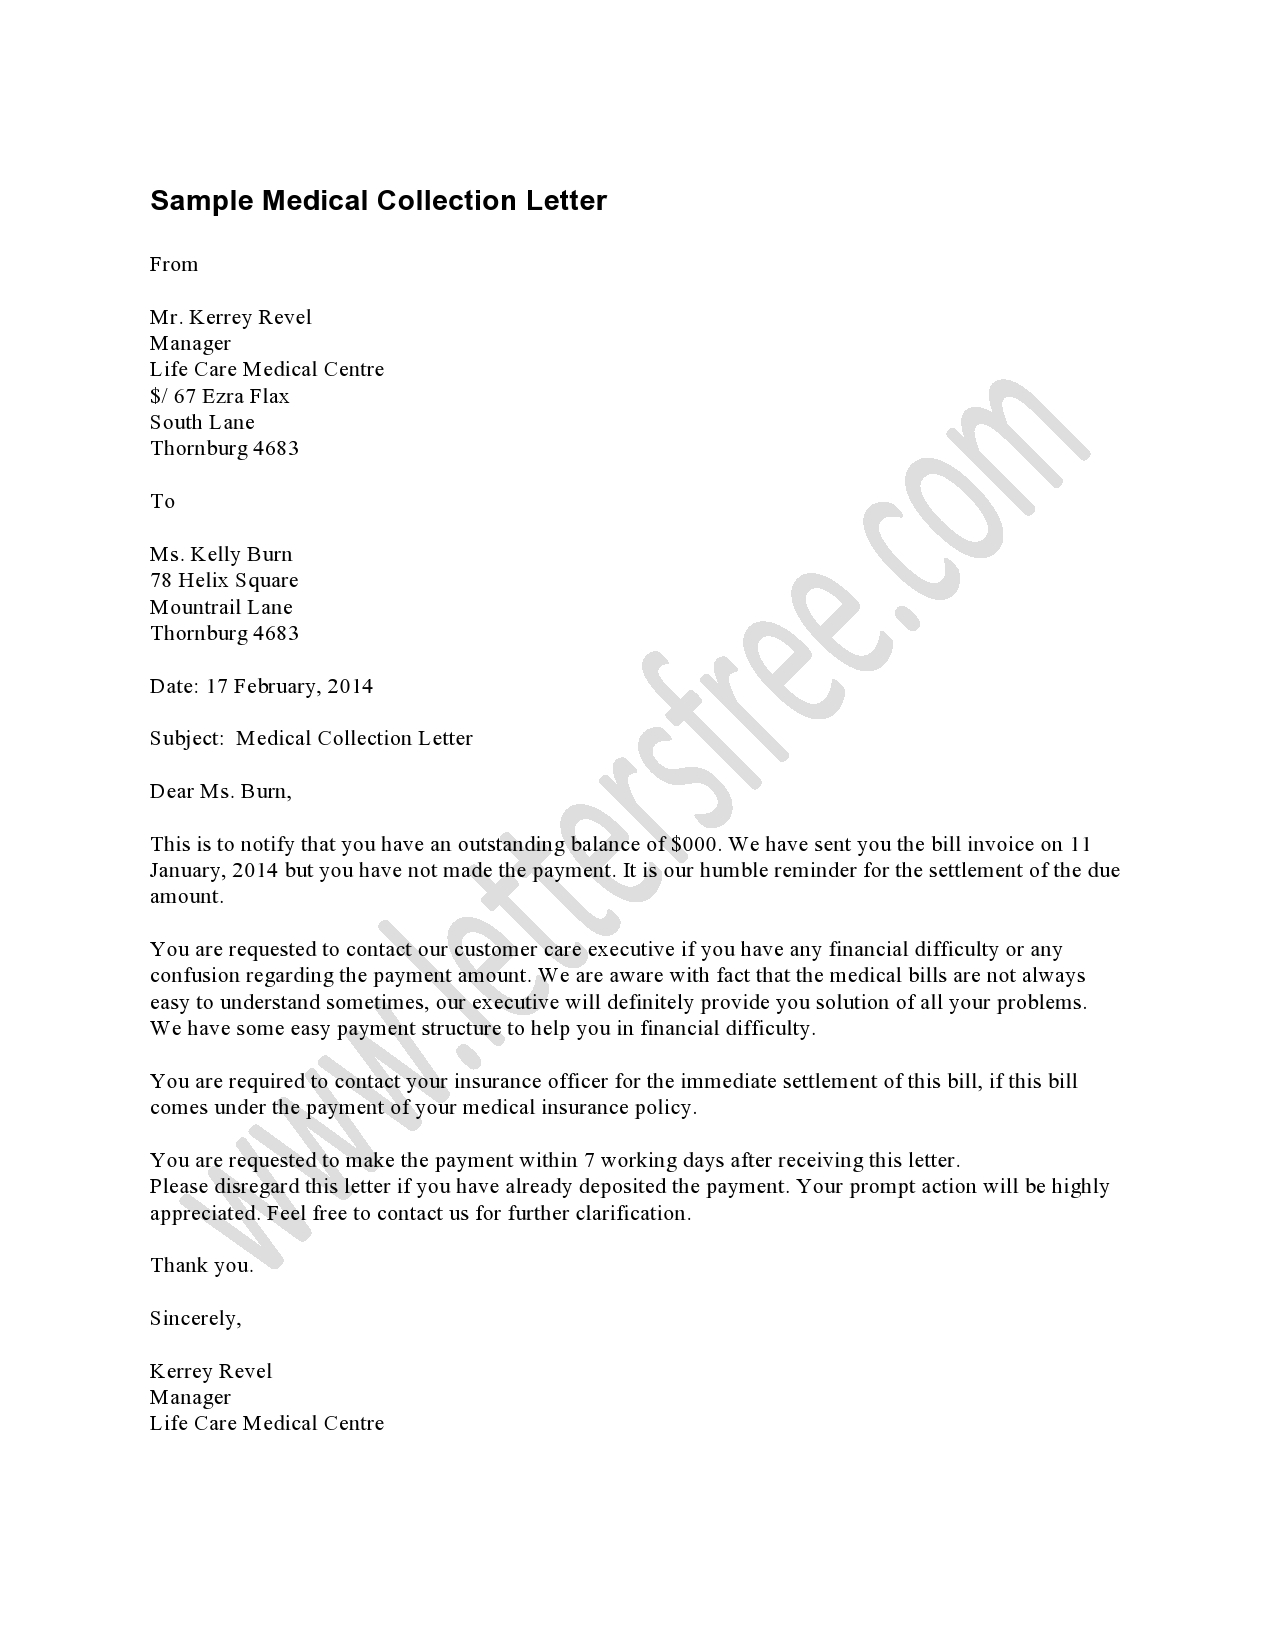 Hipaa letter medical collection template collection letter templates hipaa letter medical collection template collections letter template for business choice image business friedricerecipe